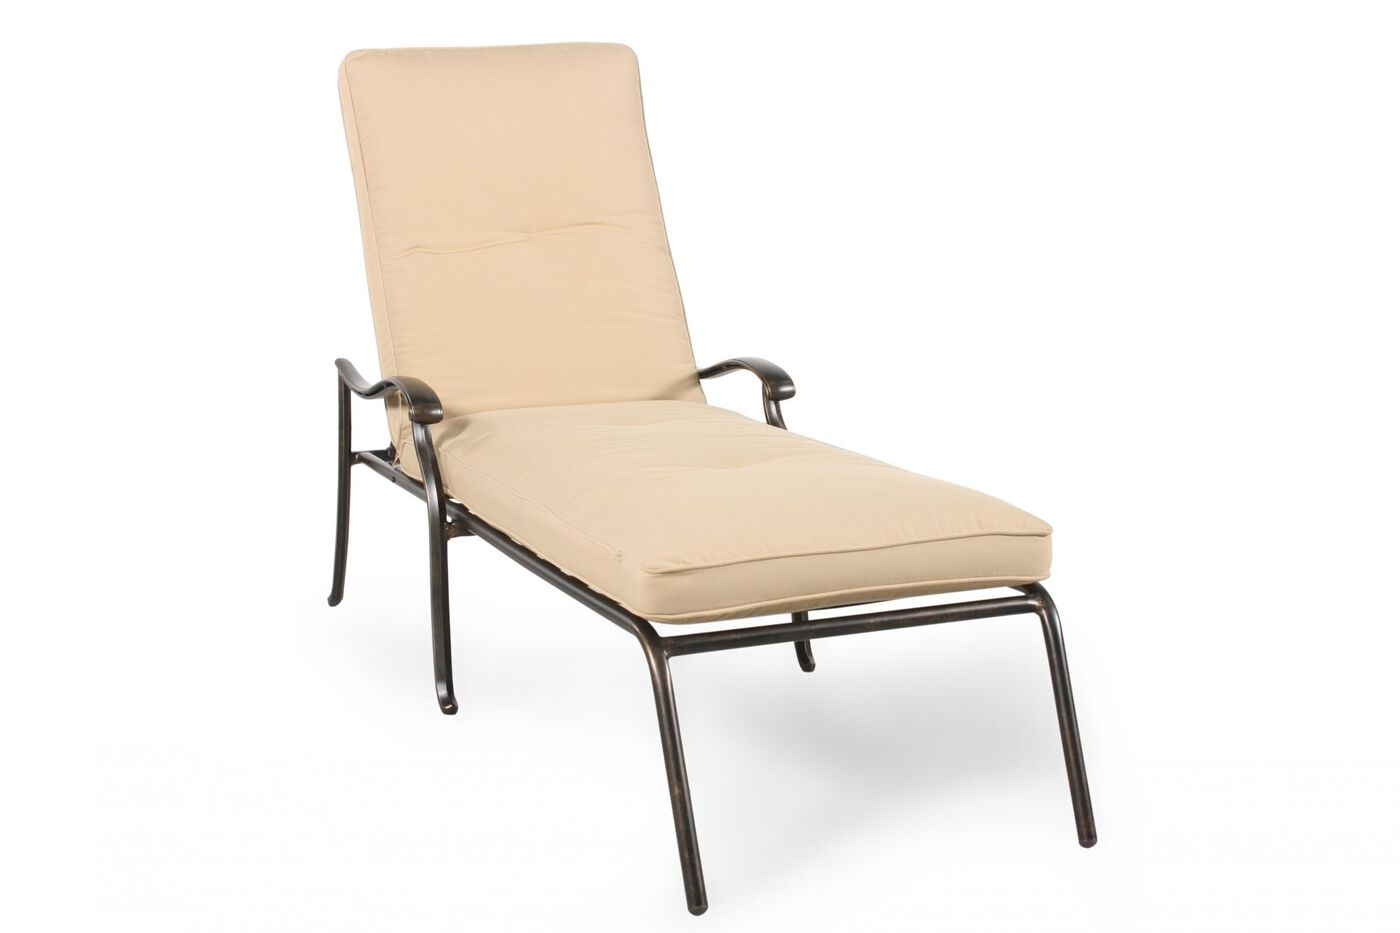 agio heritage select patio chaise lounge mathis brothers On agio heritage chaise lounge